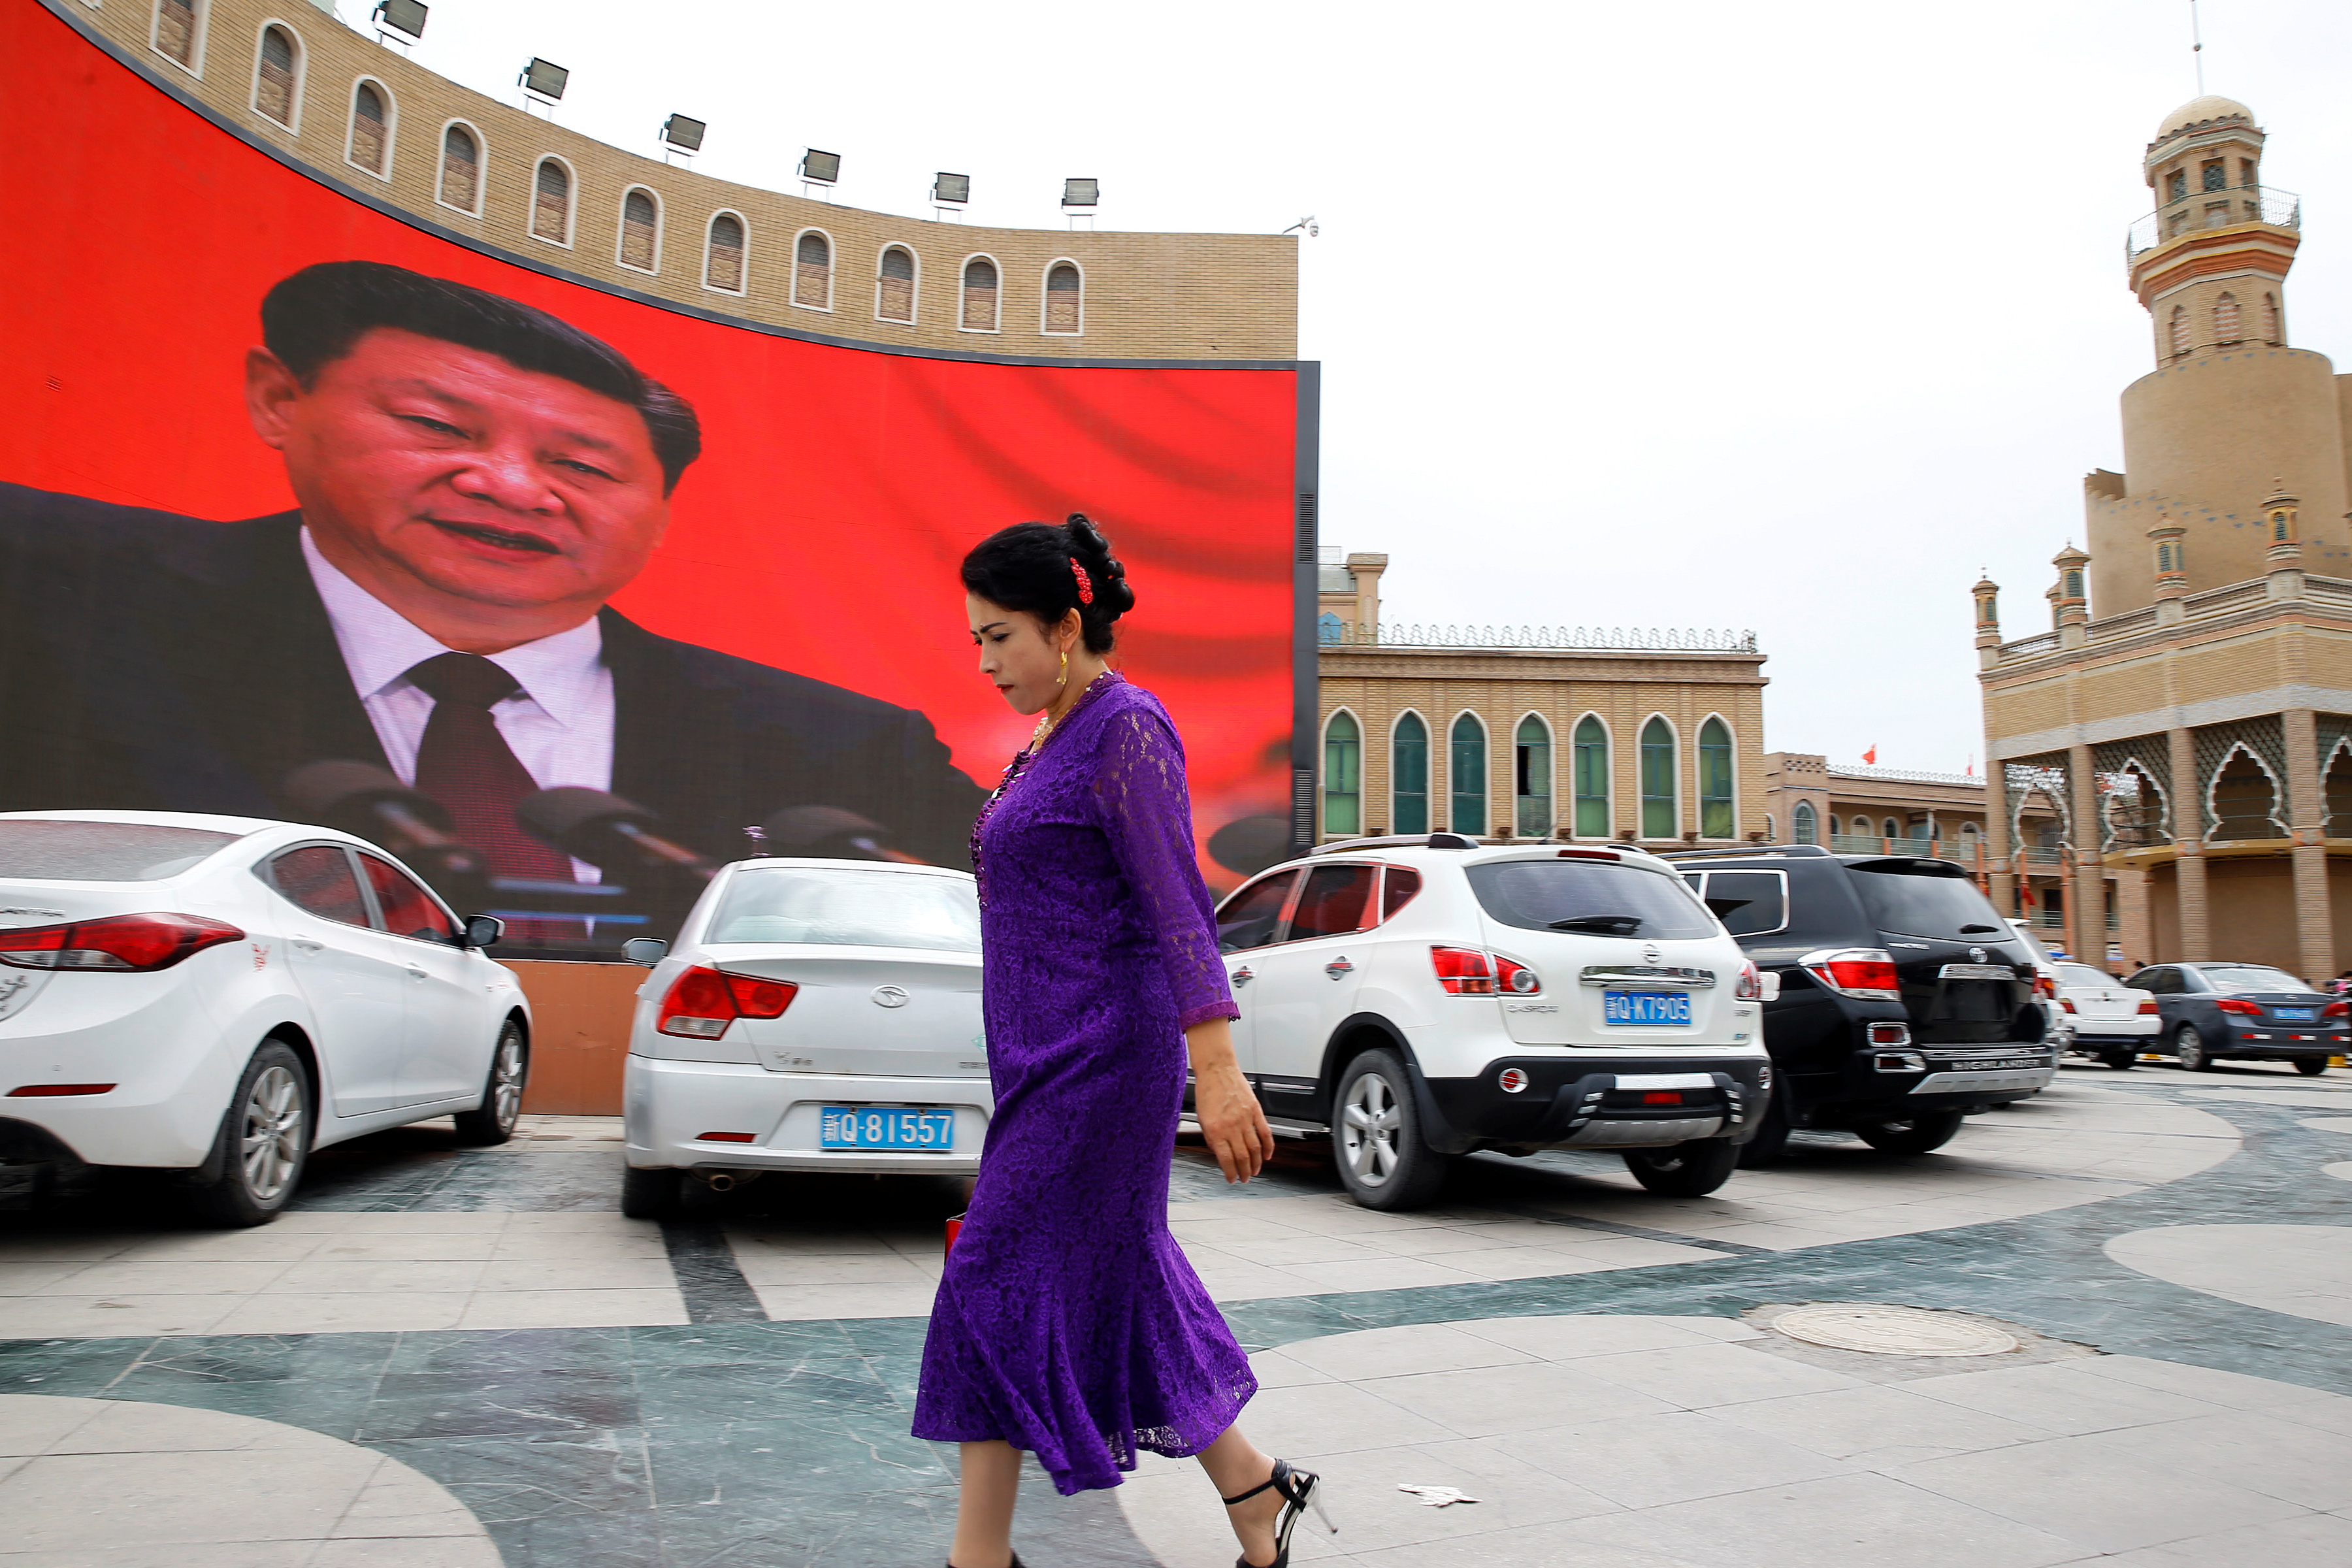 An ethnic Uighur woman walks in front of a giant screen with a picture of Chinese President Xi Jinping in the main city square in Kashgar in Xinjiang Uighur Autonomous Region, China September 6, 2018. The screen broadcasts a slideshow of images of Xi on loop, including propaganda images of his previous visit to Xinjiang. Picture taken September 6, 2018. To match Special Report MUSLIMS-CAMPS/CHINA REUTERS/Thomas Peter